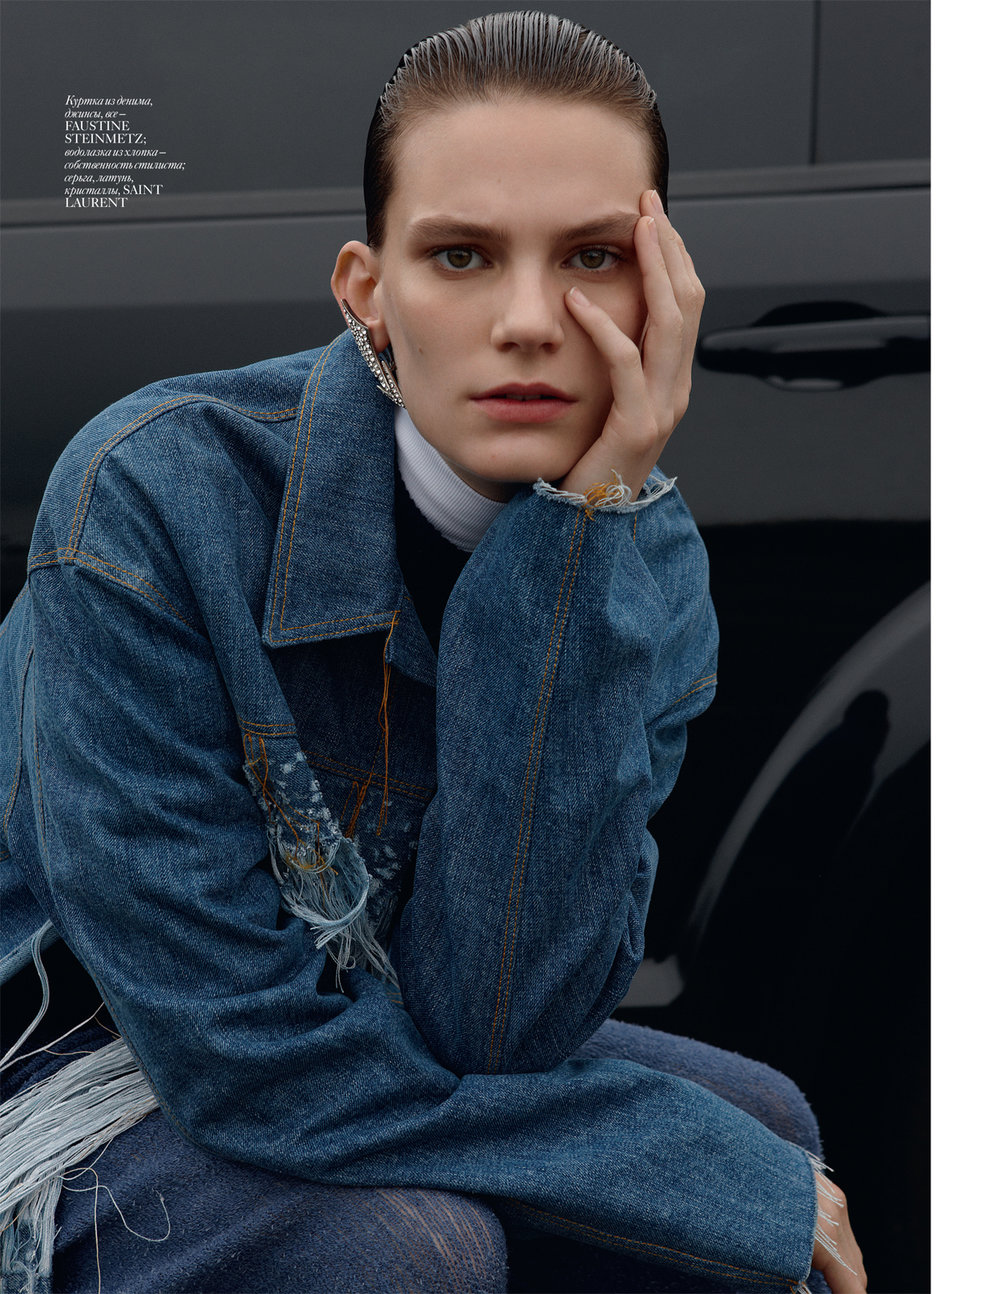 130-145Vogue45Nov2016FIN-1fcopy.jpg